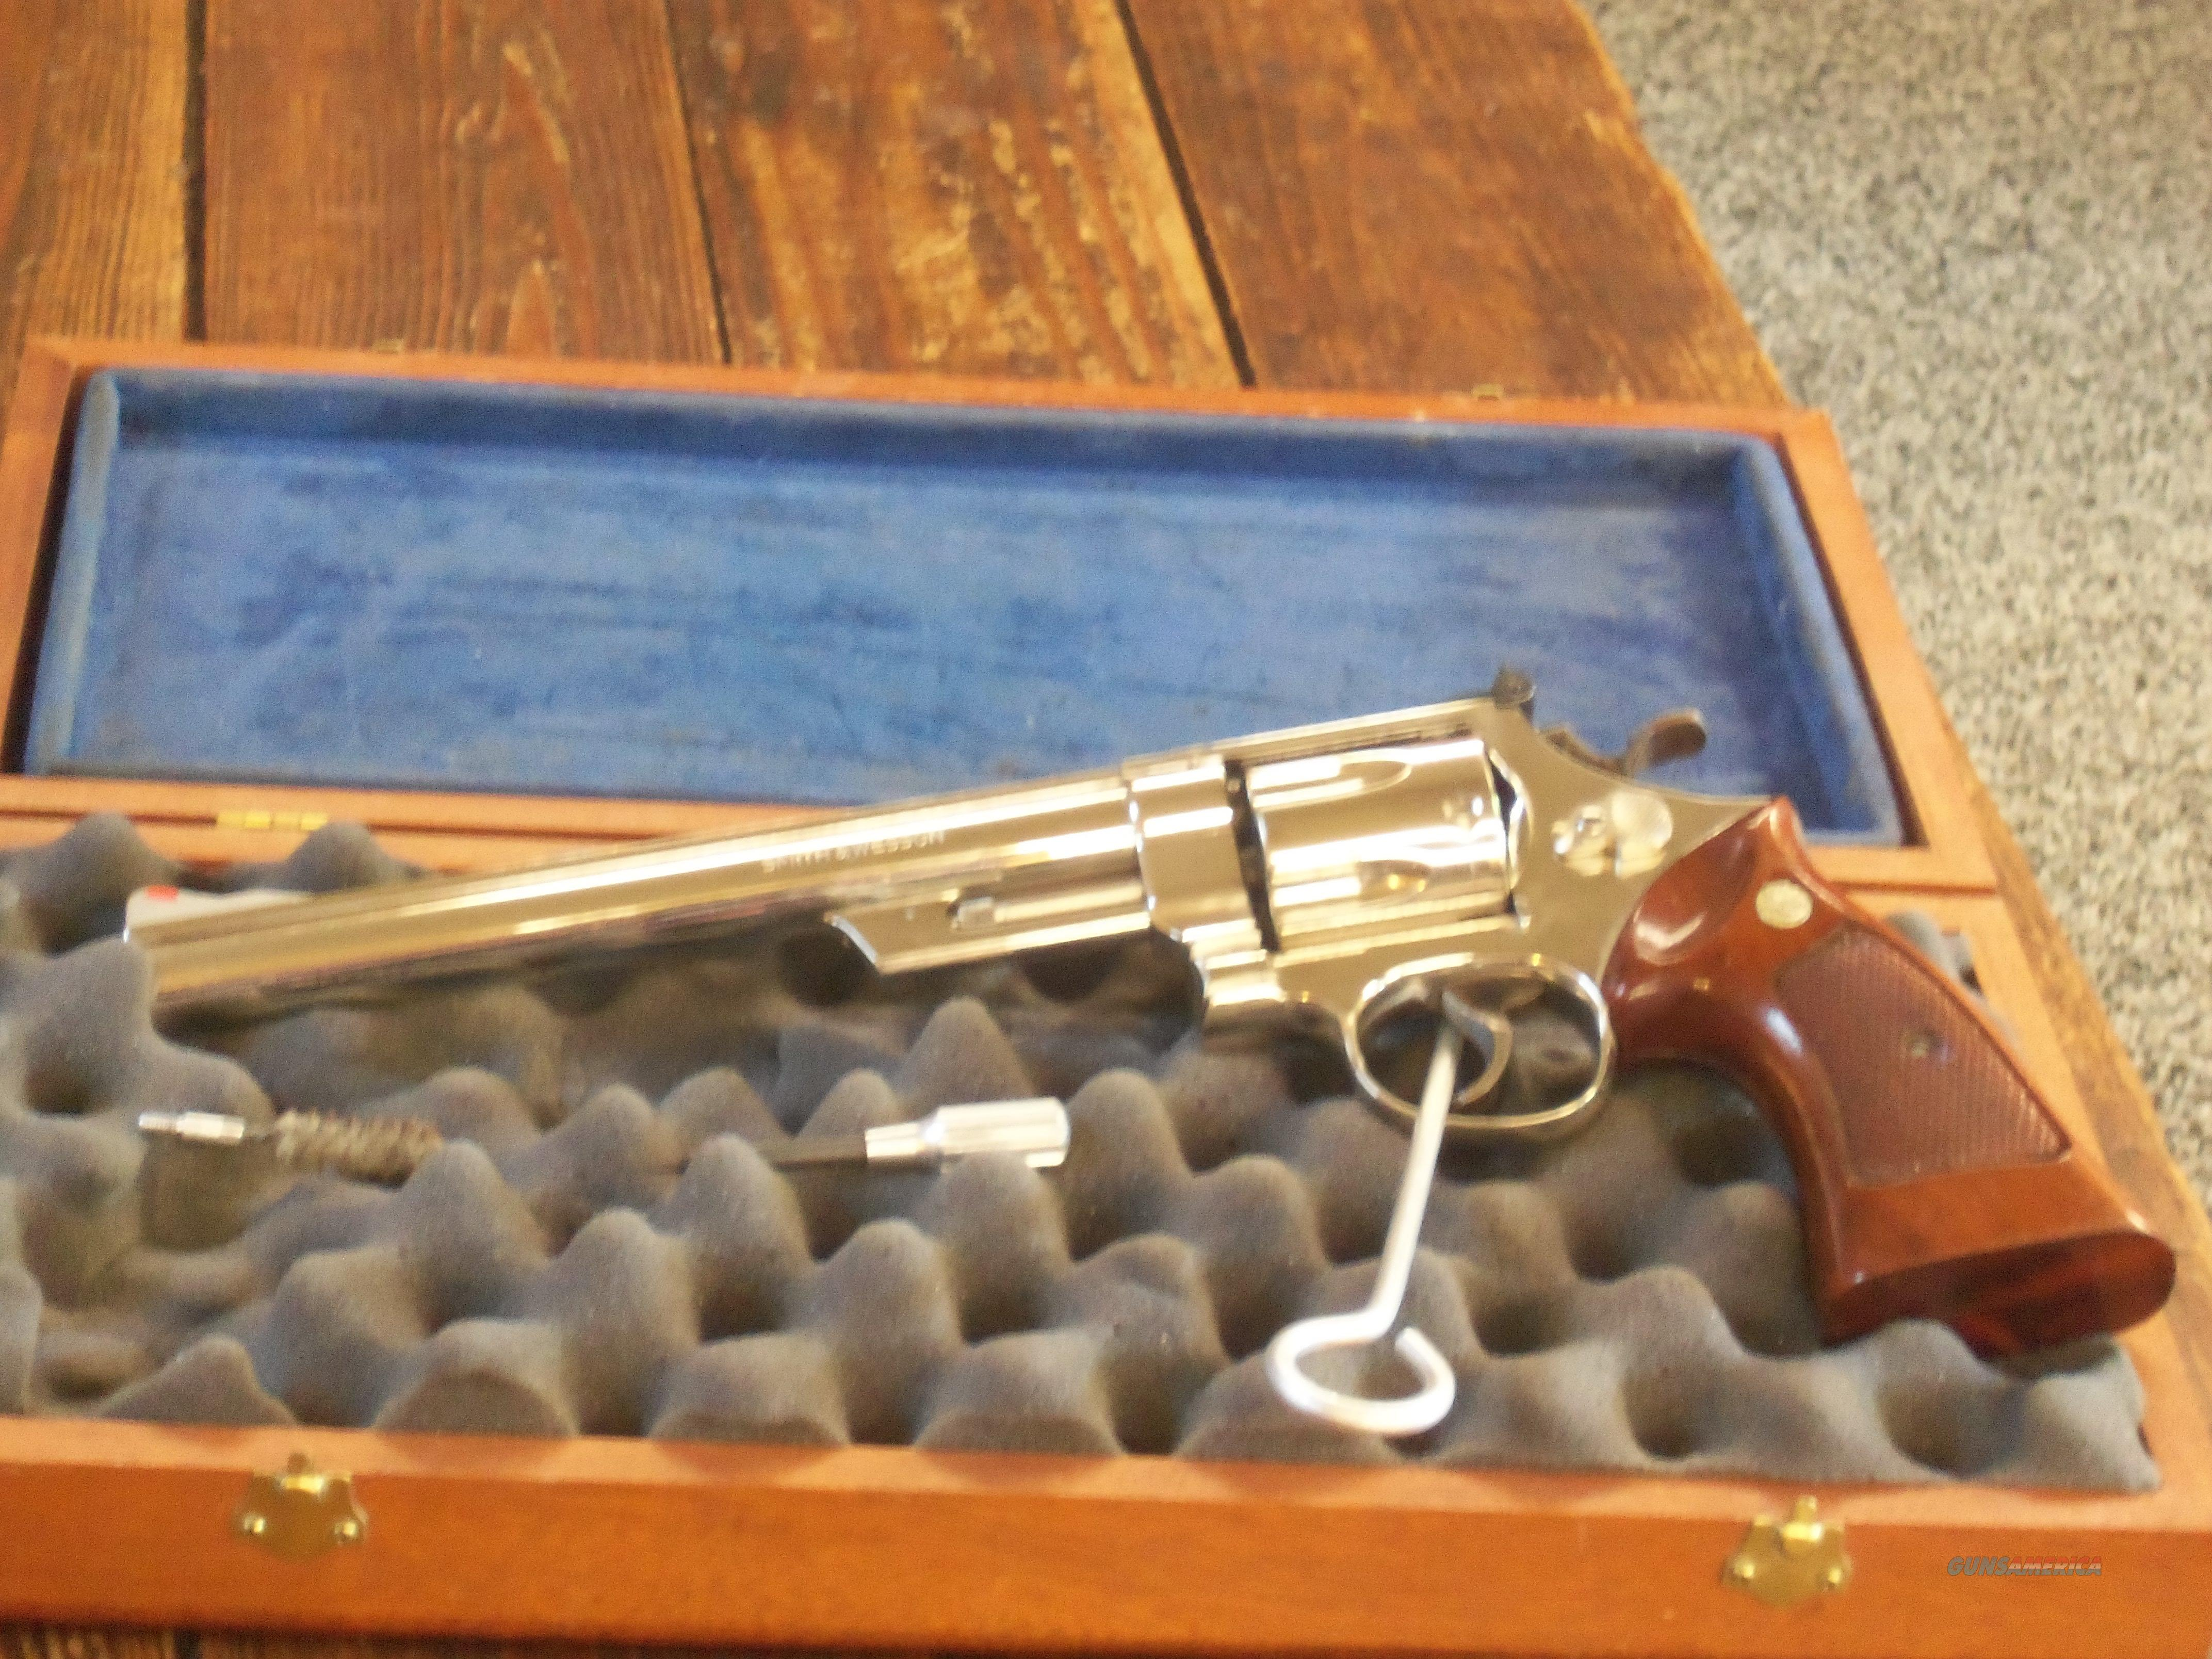 Smith & Wesson29-2  8 3/8 Nickel 44 Magnum W Case  Guns > Pistols > Smith & Wesson Revolvers > Full Frame Revolver